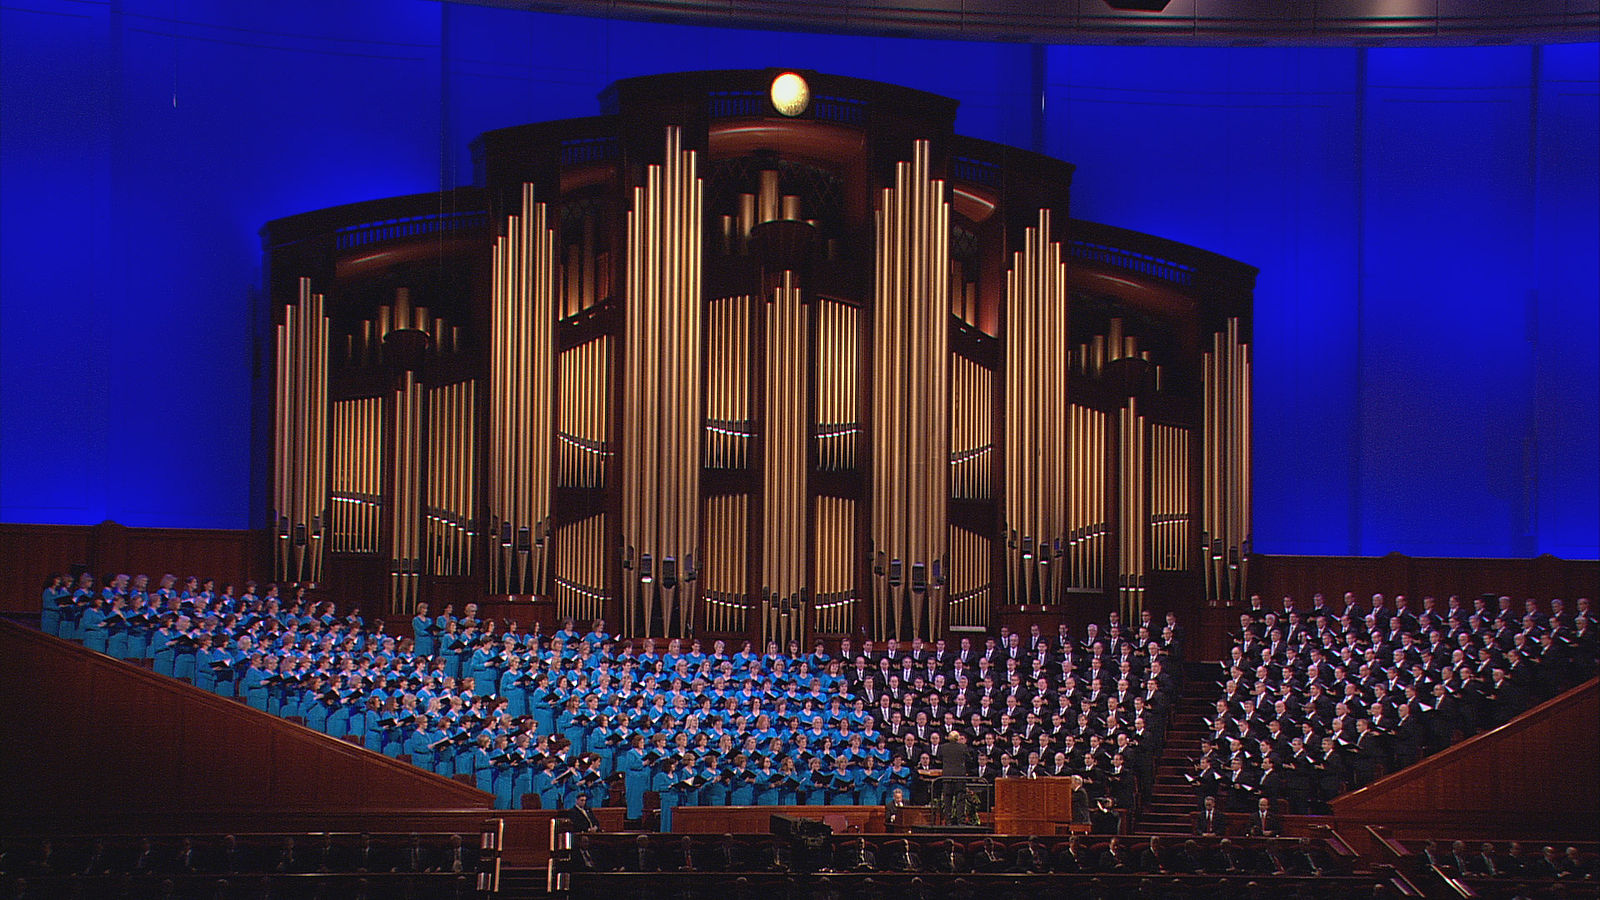 Conf. Cent. MoTab shot